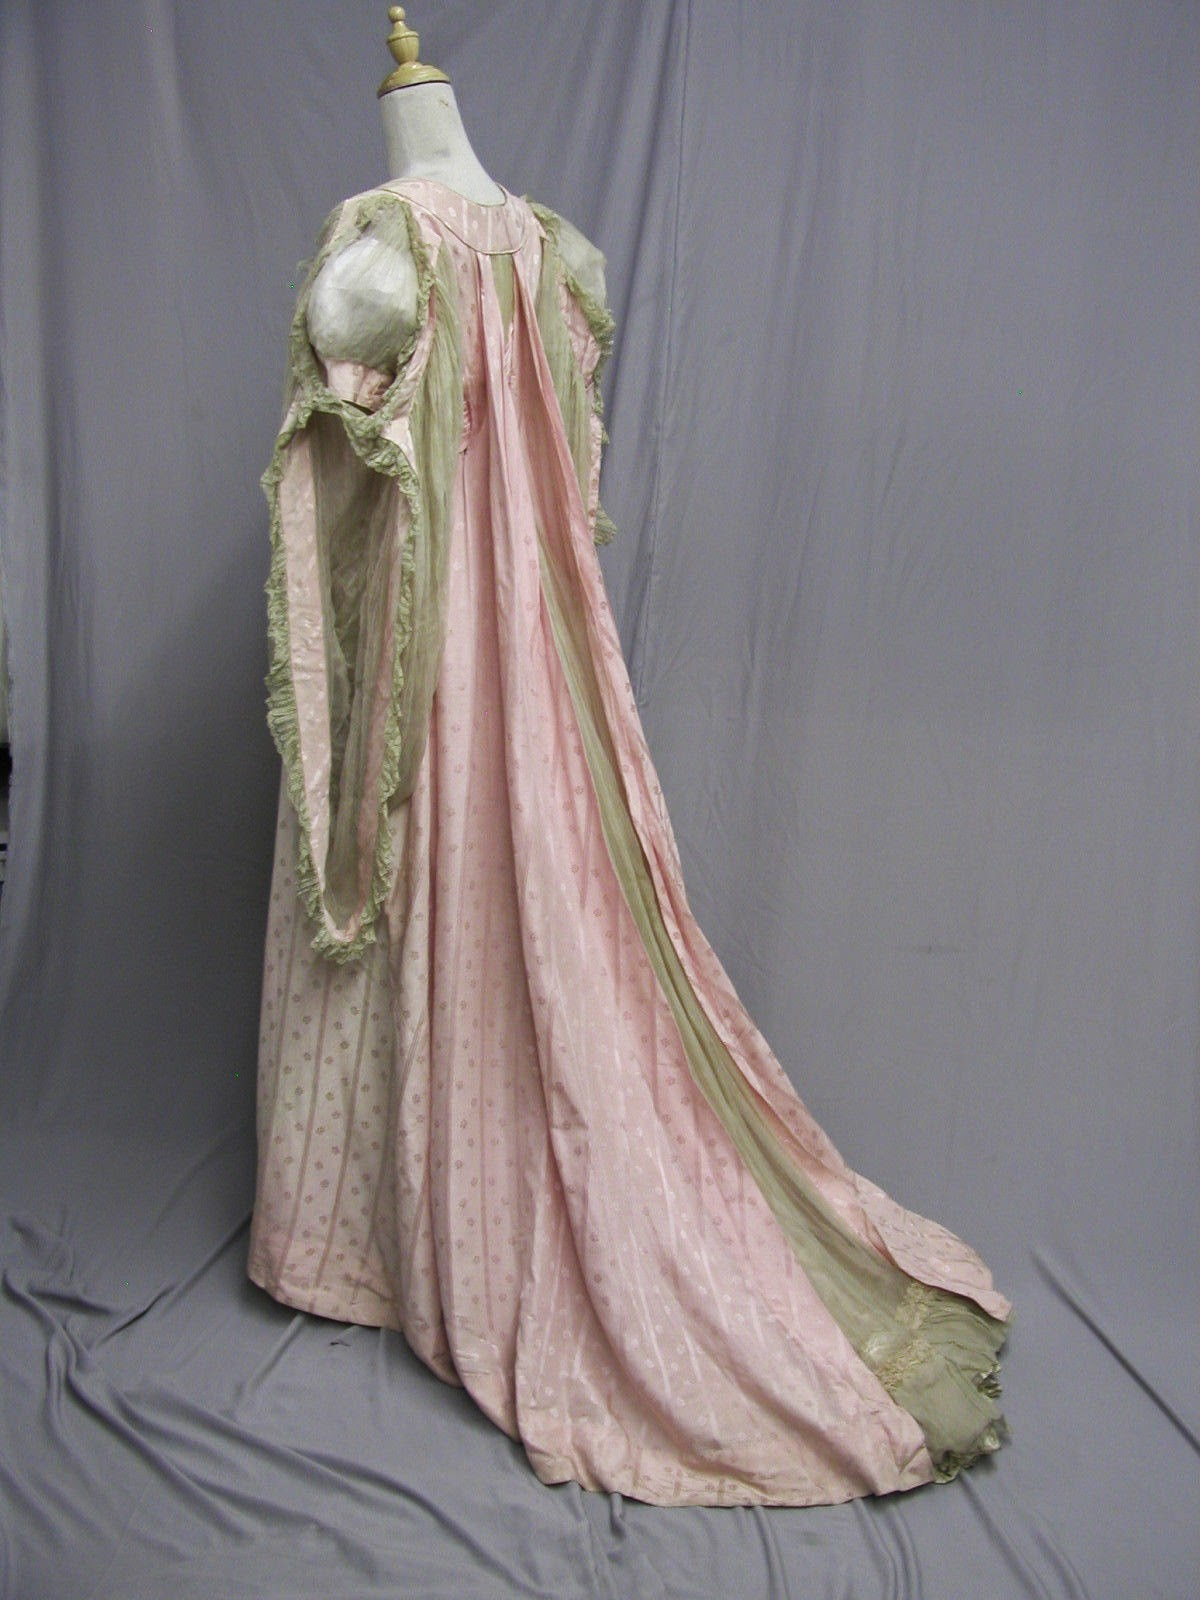 All The Pretty Dresses: Edwardian Tea Gown